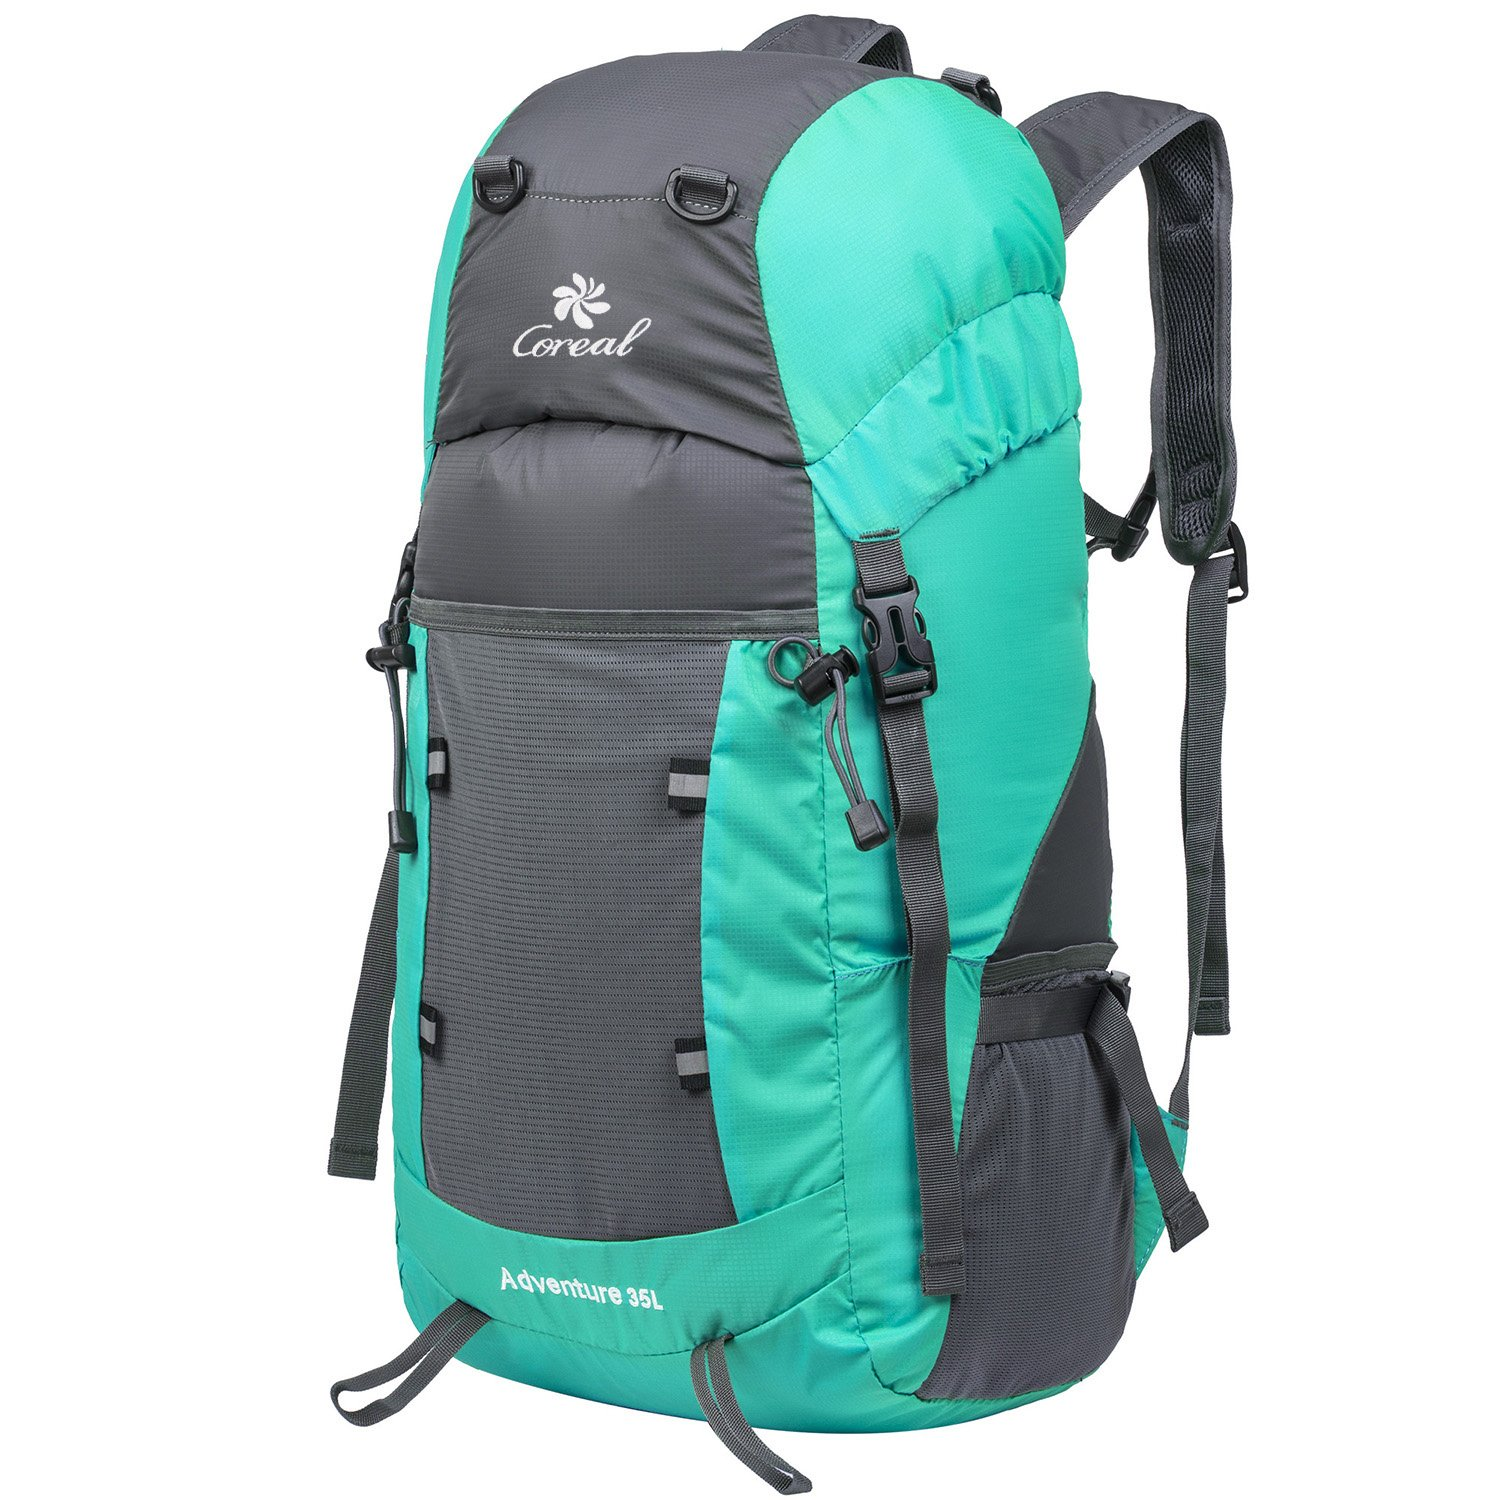 Top 5 Best Backpacks For Travel